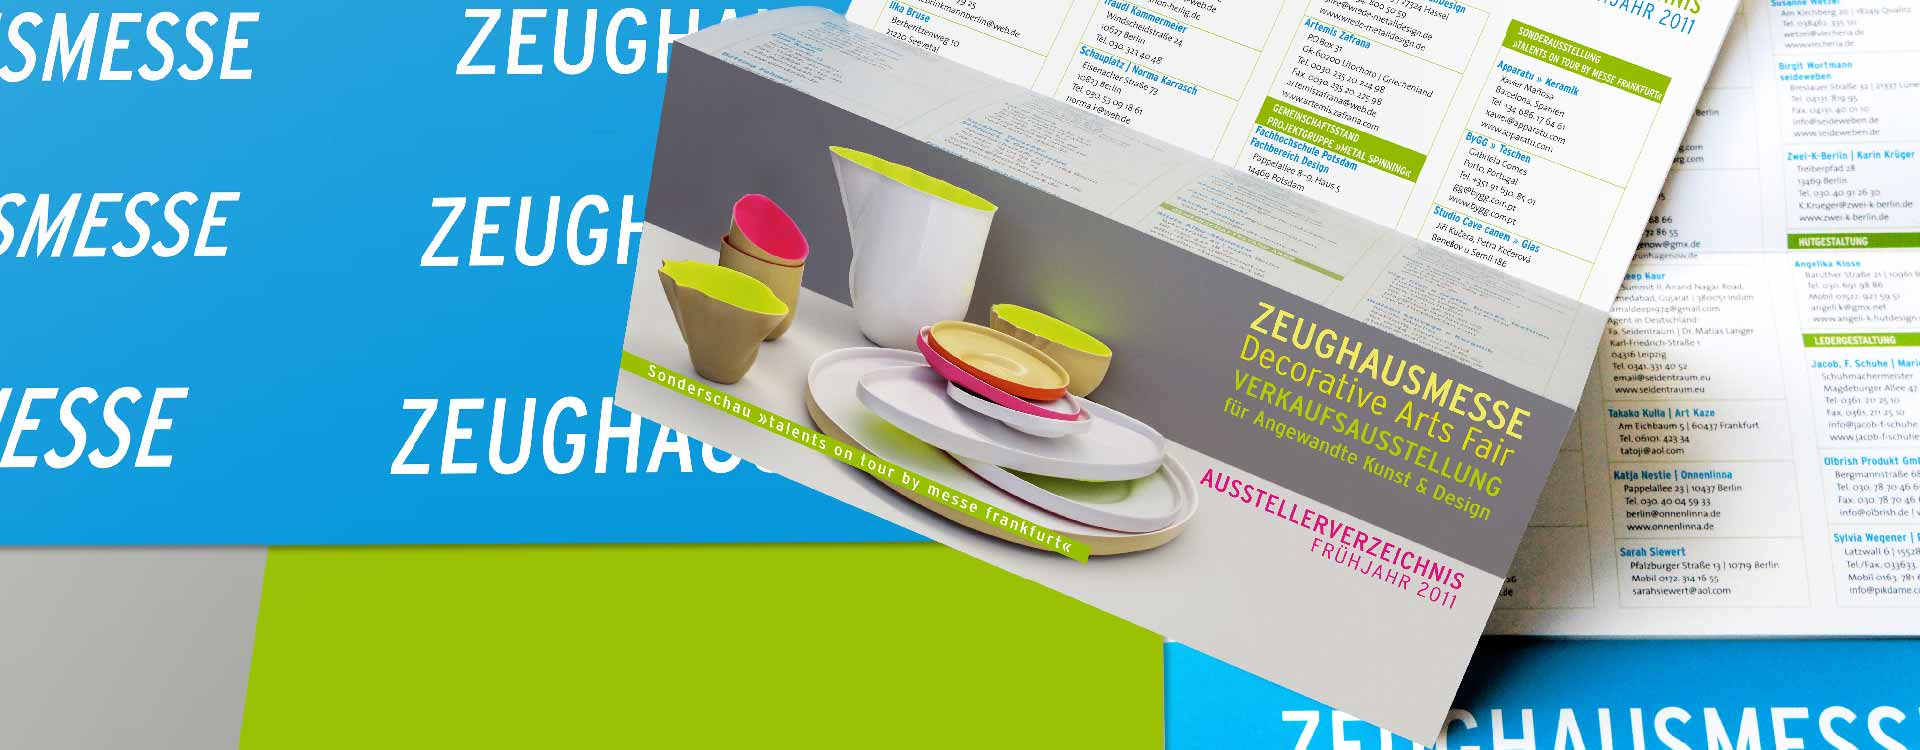 Flyer for Zeughausmesse; Design: Kattrin Richter | Graphic Design Studio